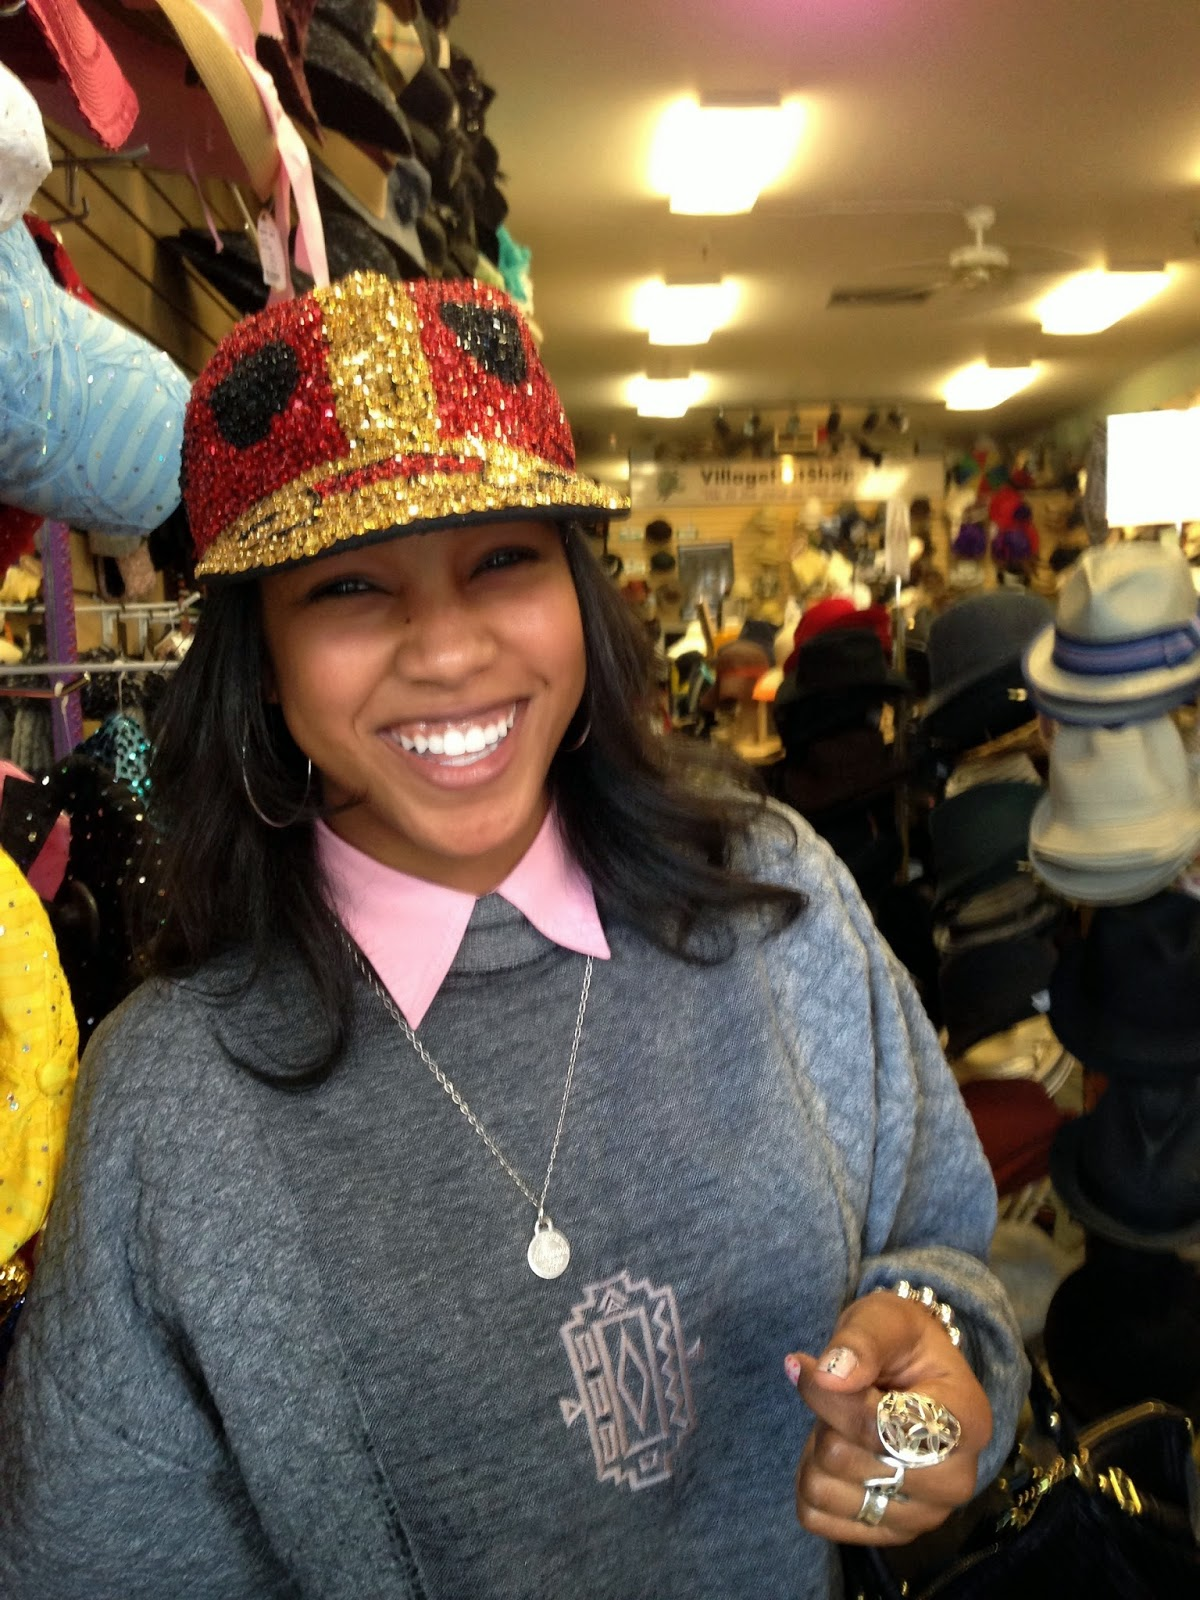 Wearing sequined ladybug hat and Tiffany & Co necklace